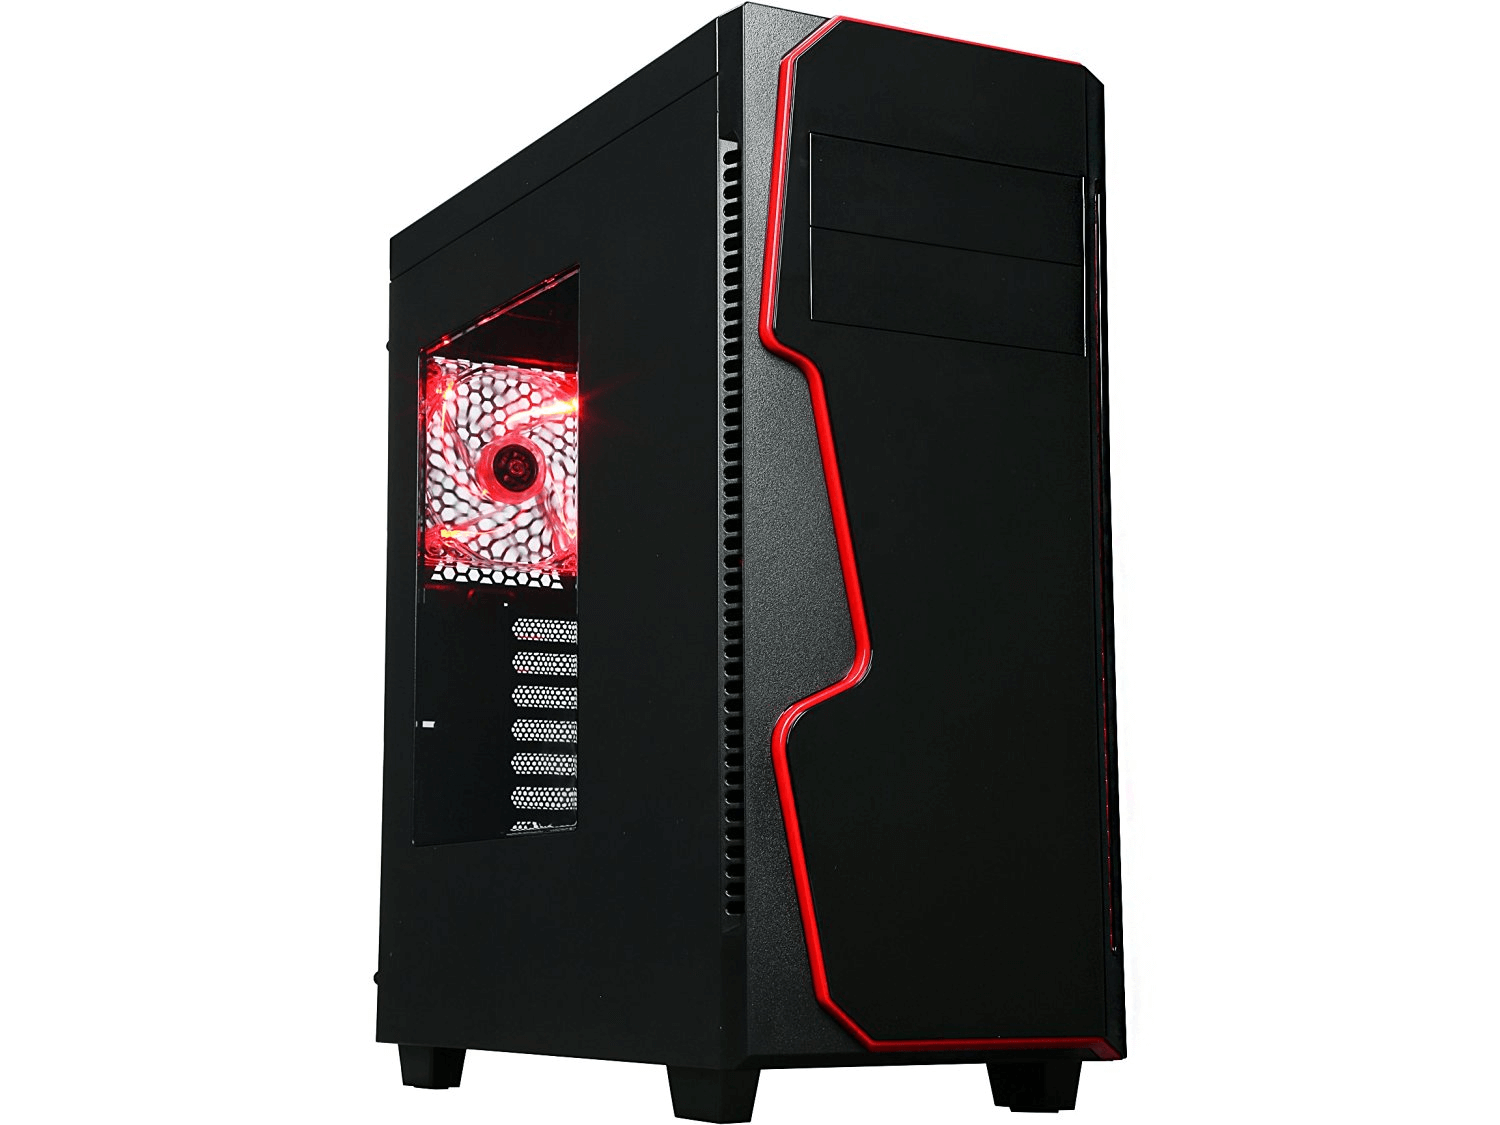 What to keep in mind when you're buying a case for your computer